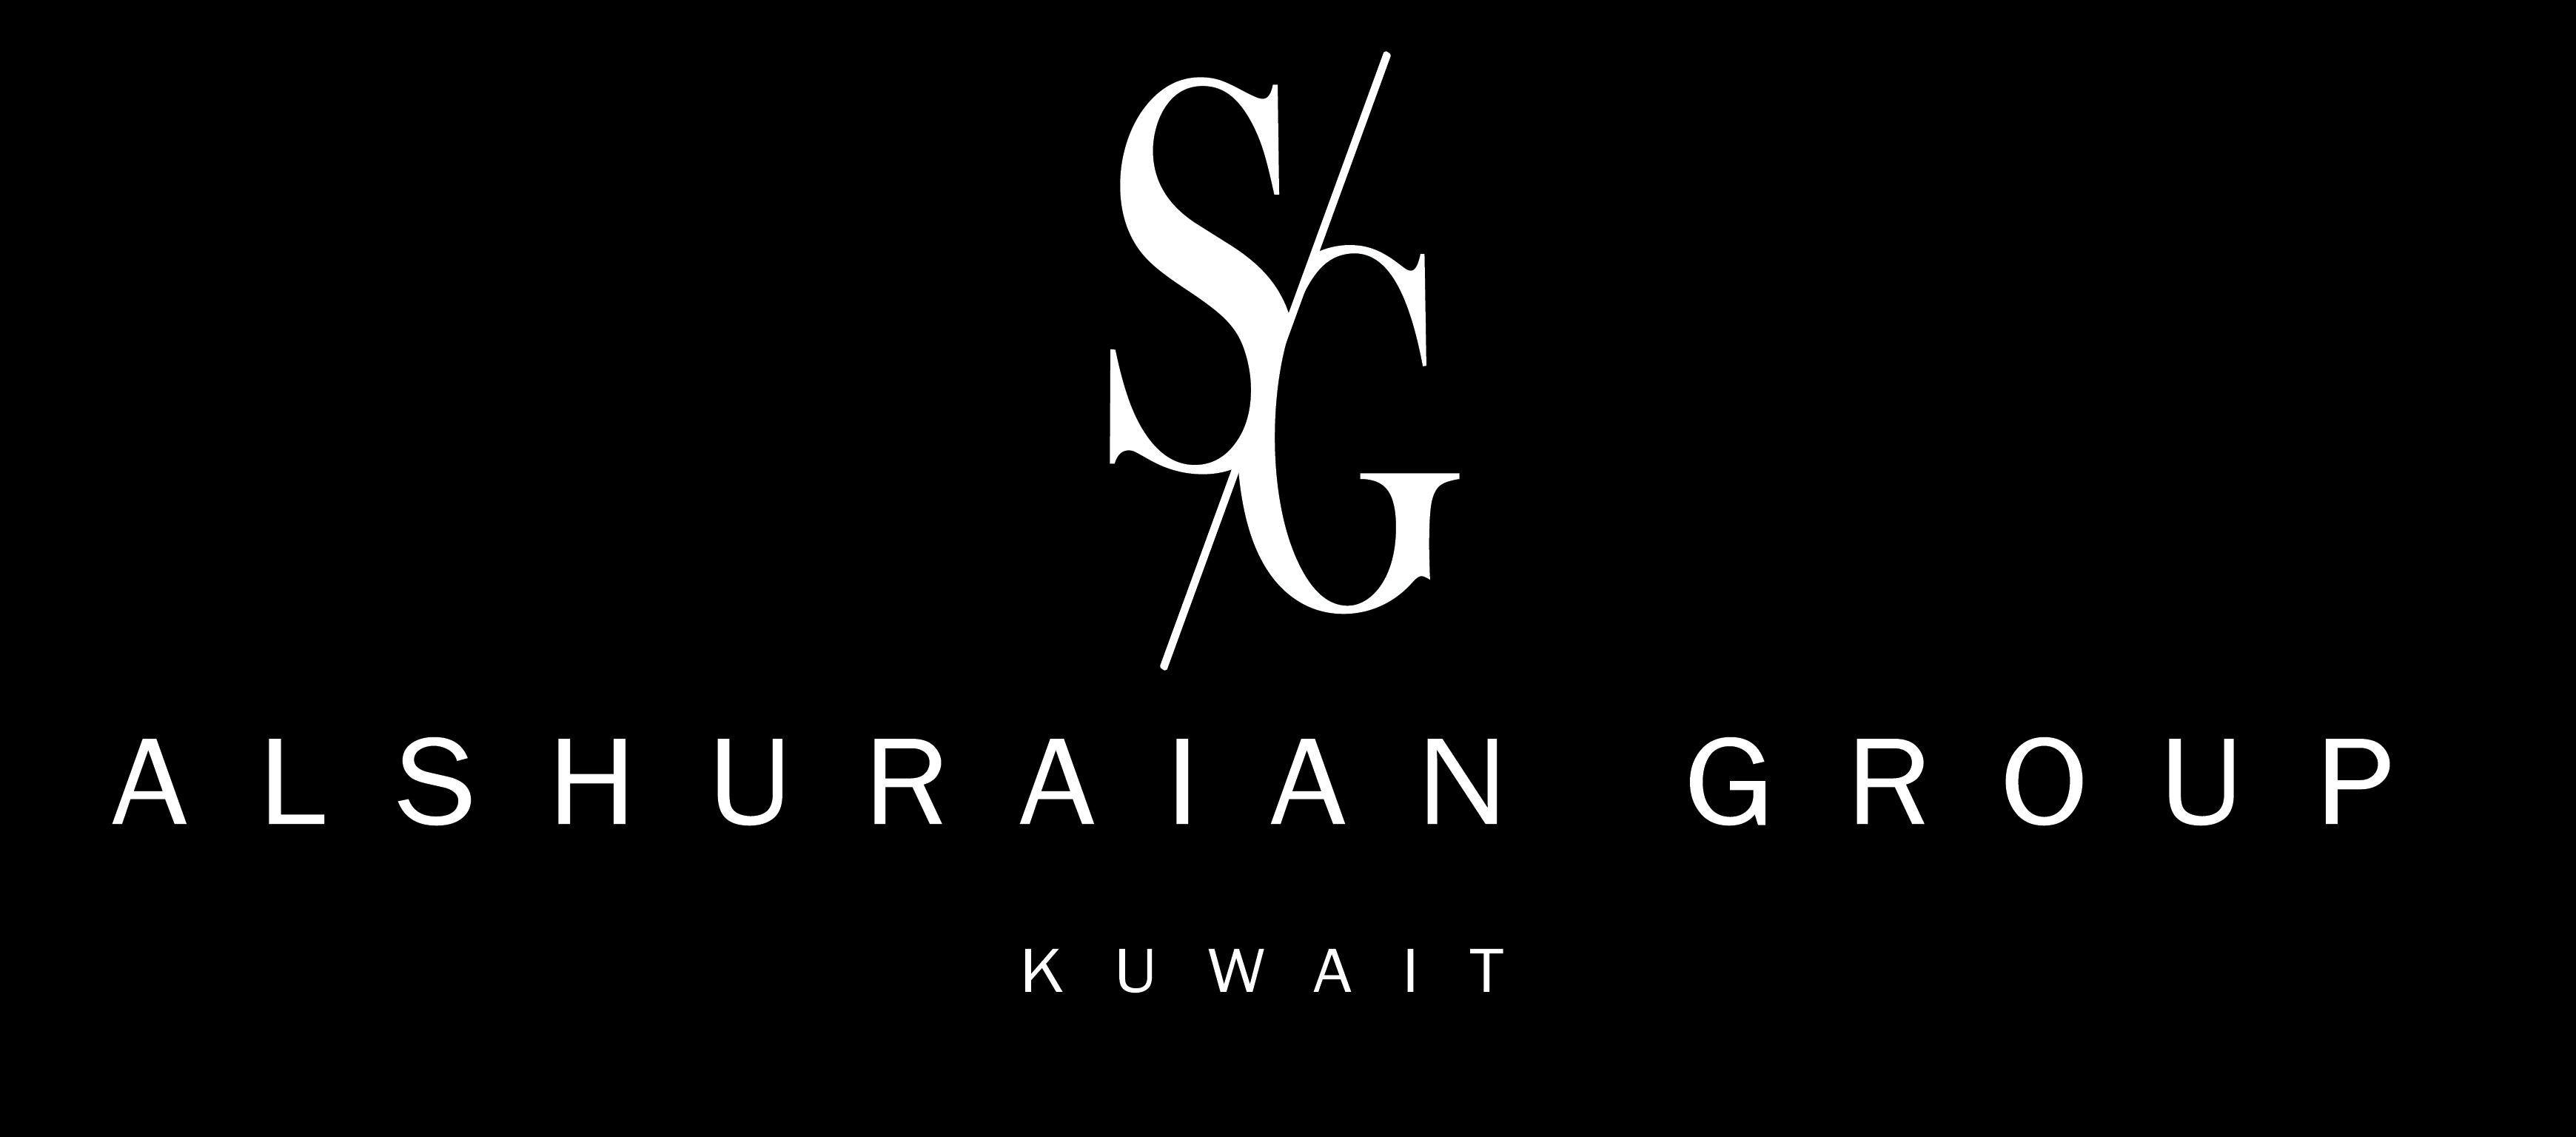 Al Shuraian Group